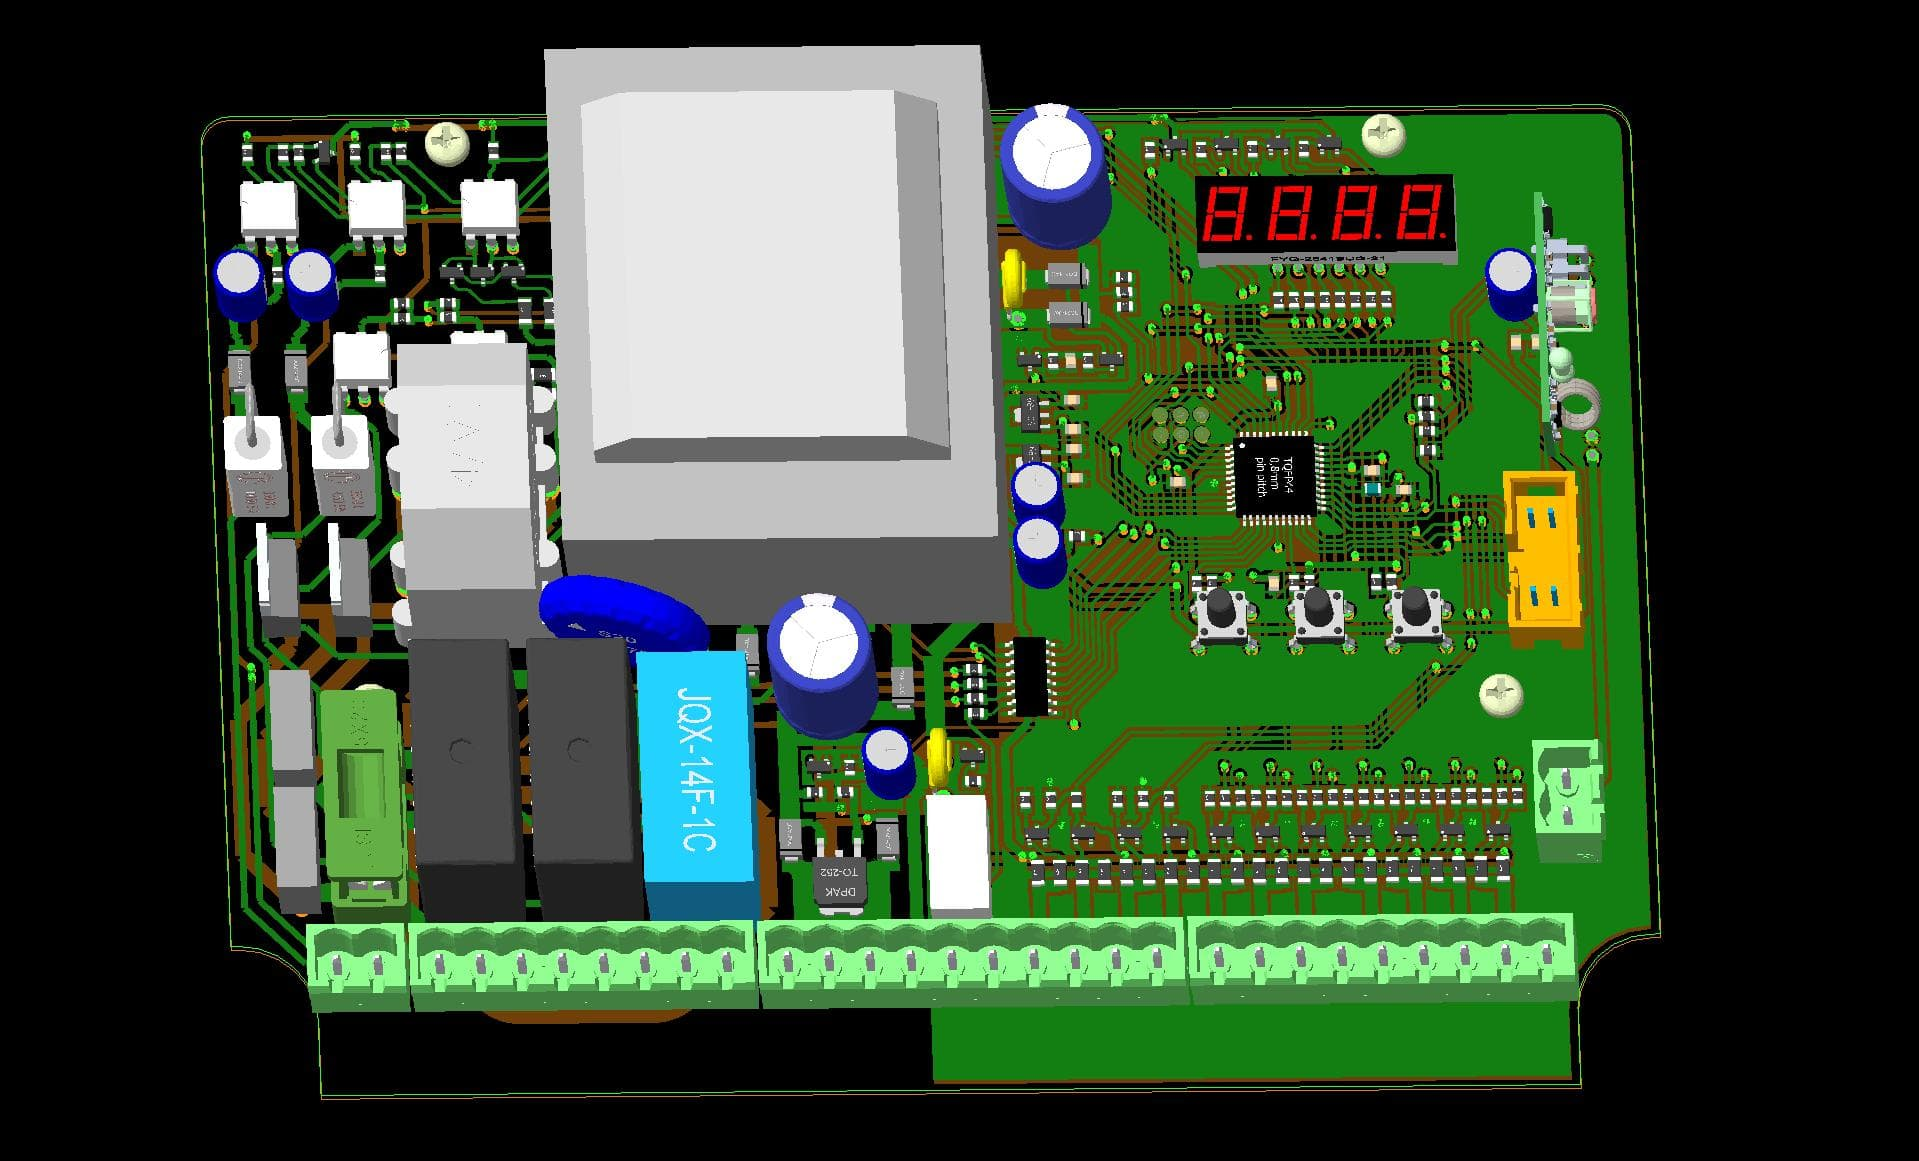 Easyeda Online Pcb Design Amp Circuit Simulator For All Platforms 2 Electronic Printed Board Layout Software Xtronic Wg Drv